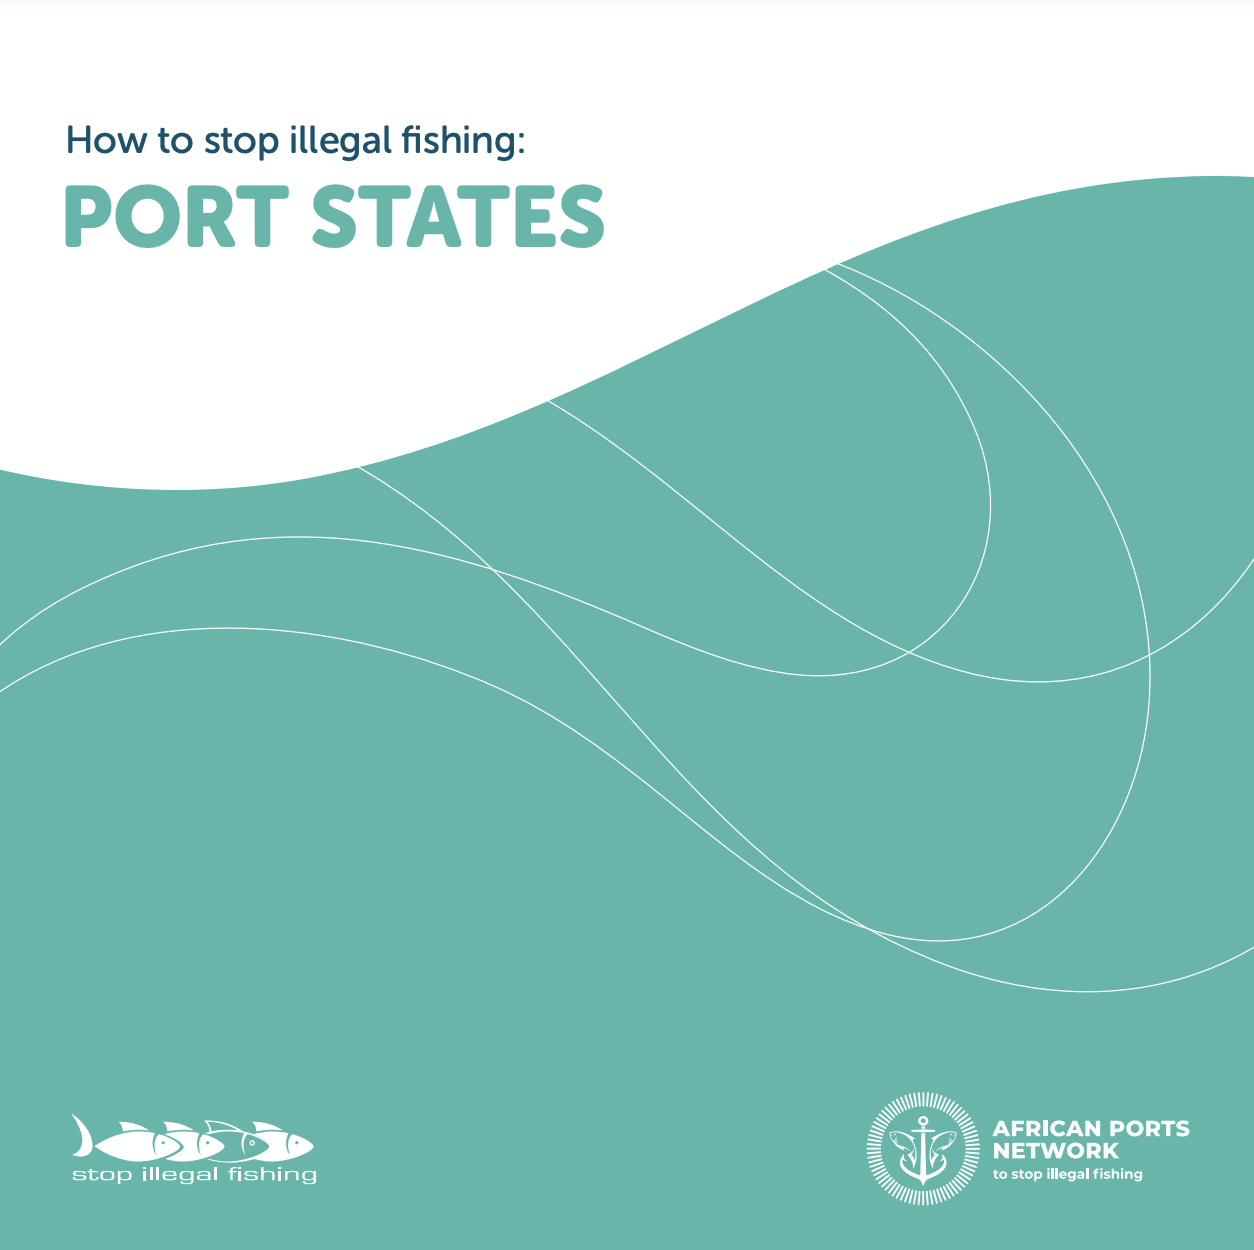 How to Stop Illegal Fishing: Port States